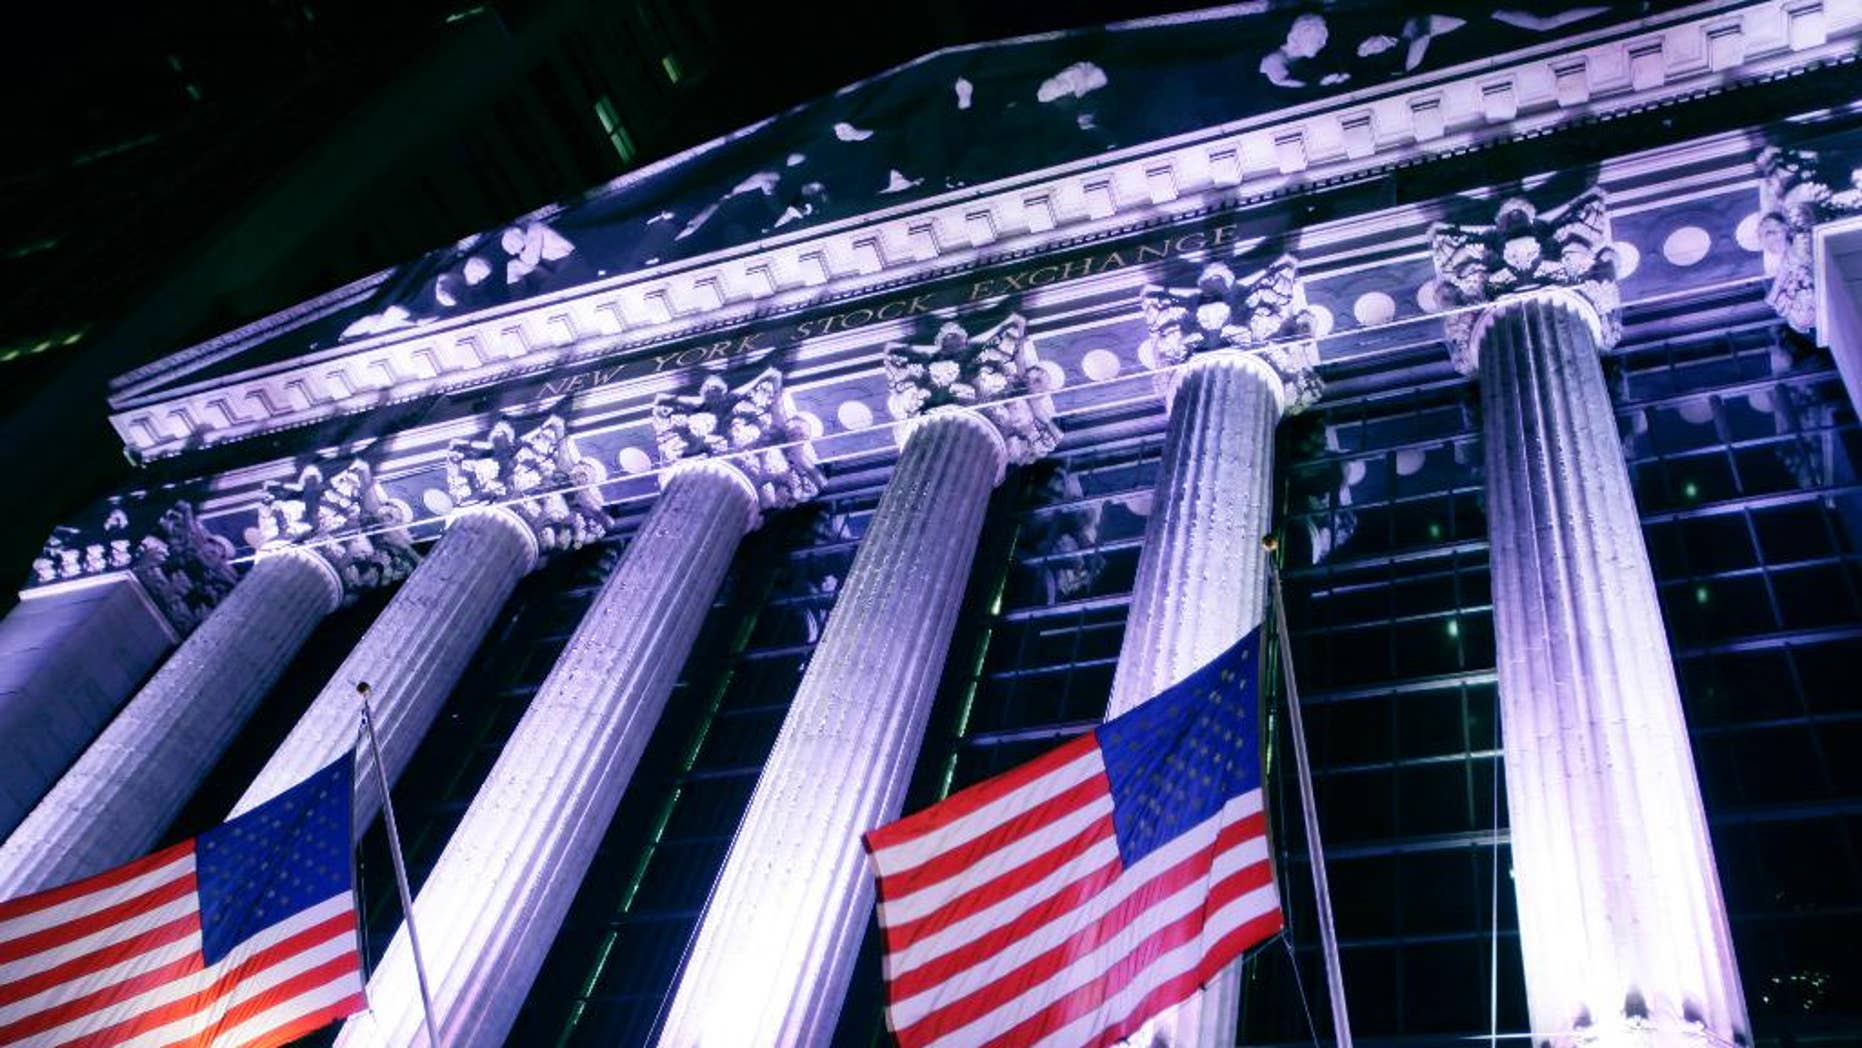 In this Wednesday, Oct. 8, 2014 photo, American flags fly in front of the New York Stock Exchange. U.S. stocks were barely higher in early trading Monday, Dec. 29, 2014, as Wall Street winds down the year in this holiday-shortened week. (AP Photo/Mark Lennihan)